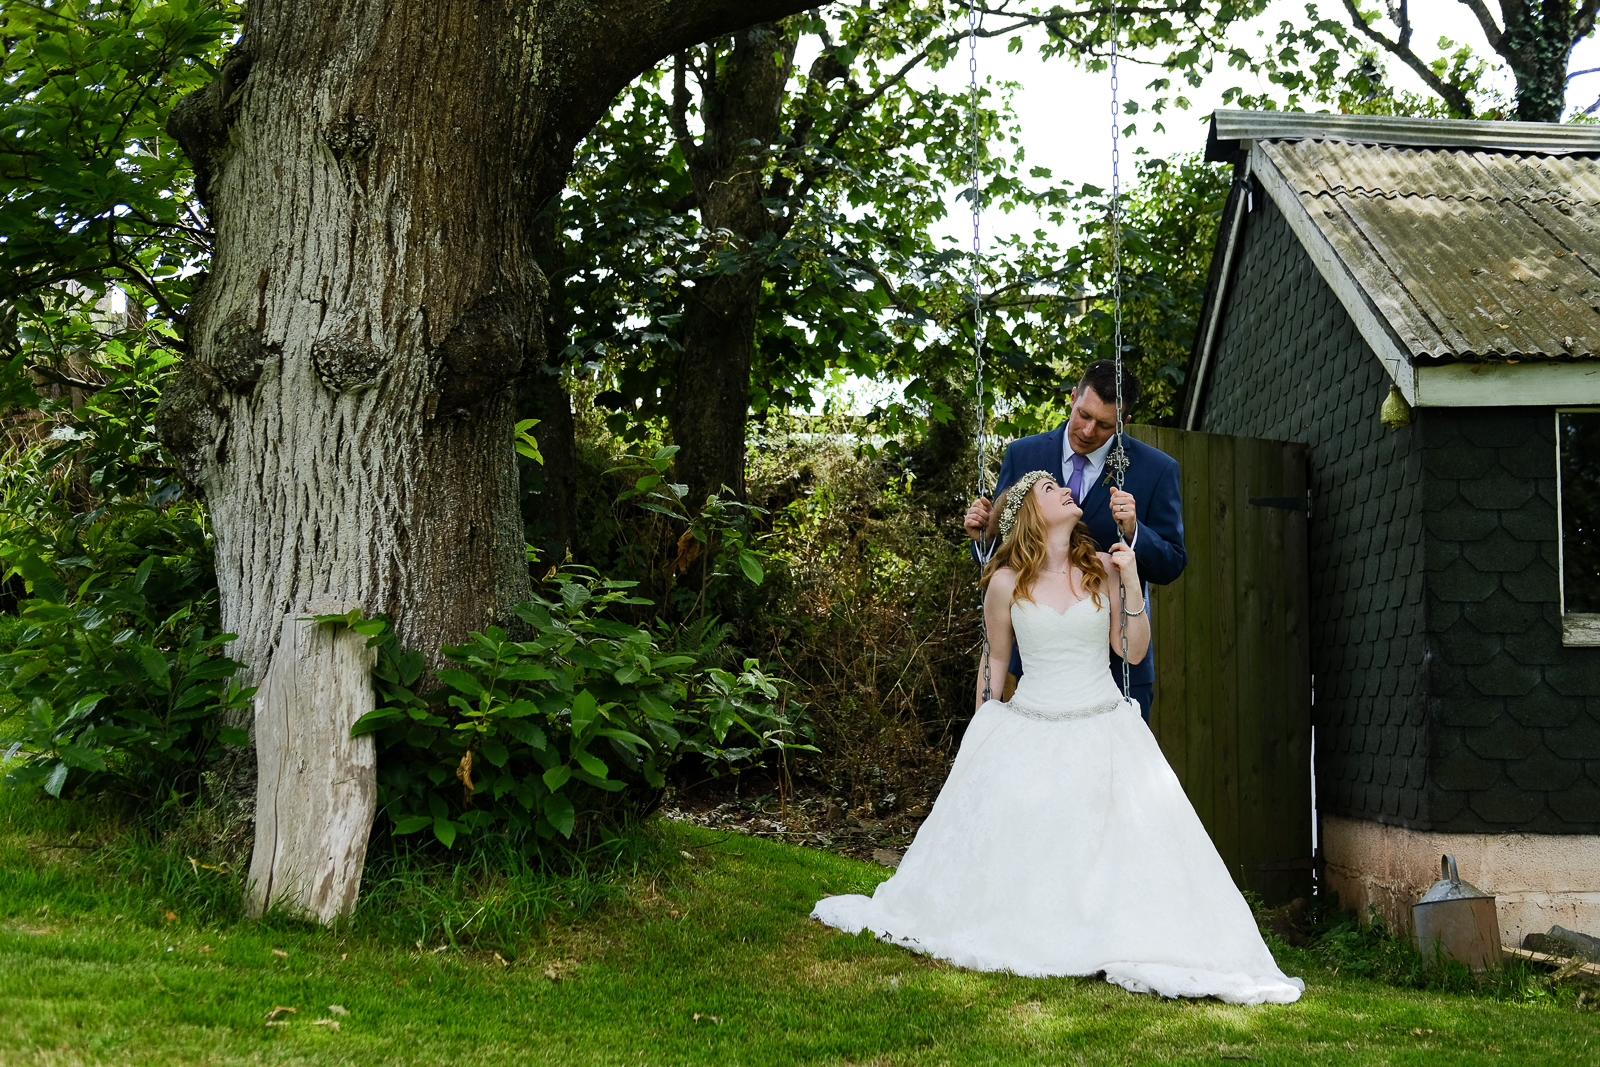 Rustic elopement at The Cow Shed in Cornwall 058.jpg